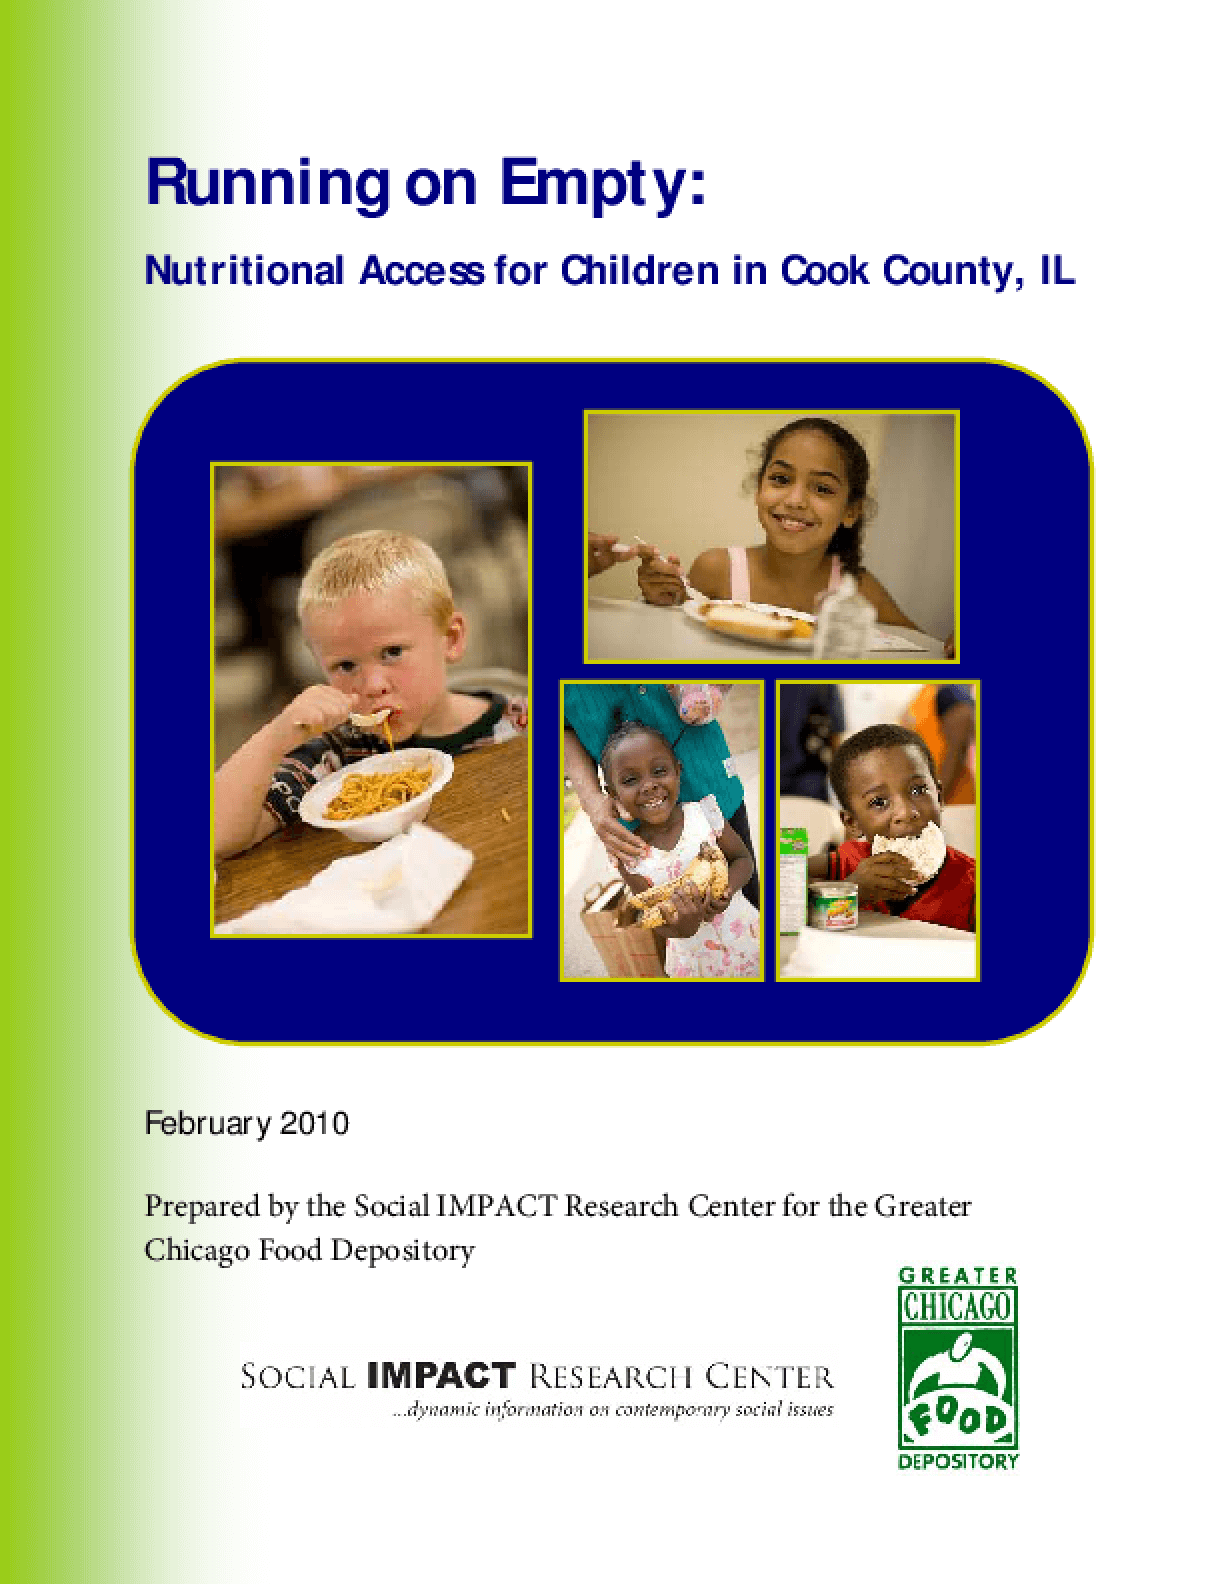 Running on Empty: Nutritional Access for Children in Cook County, Illinois